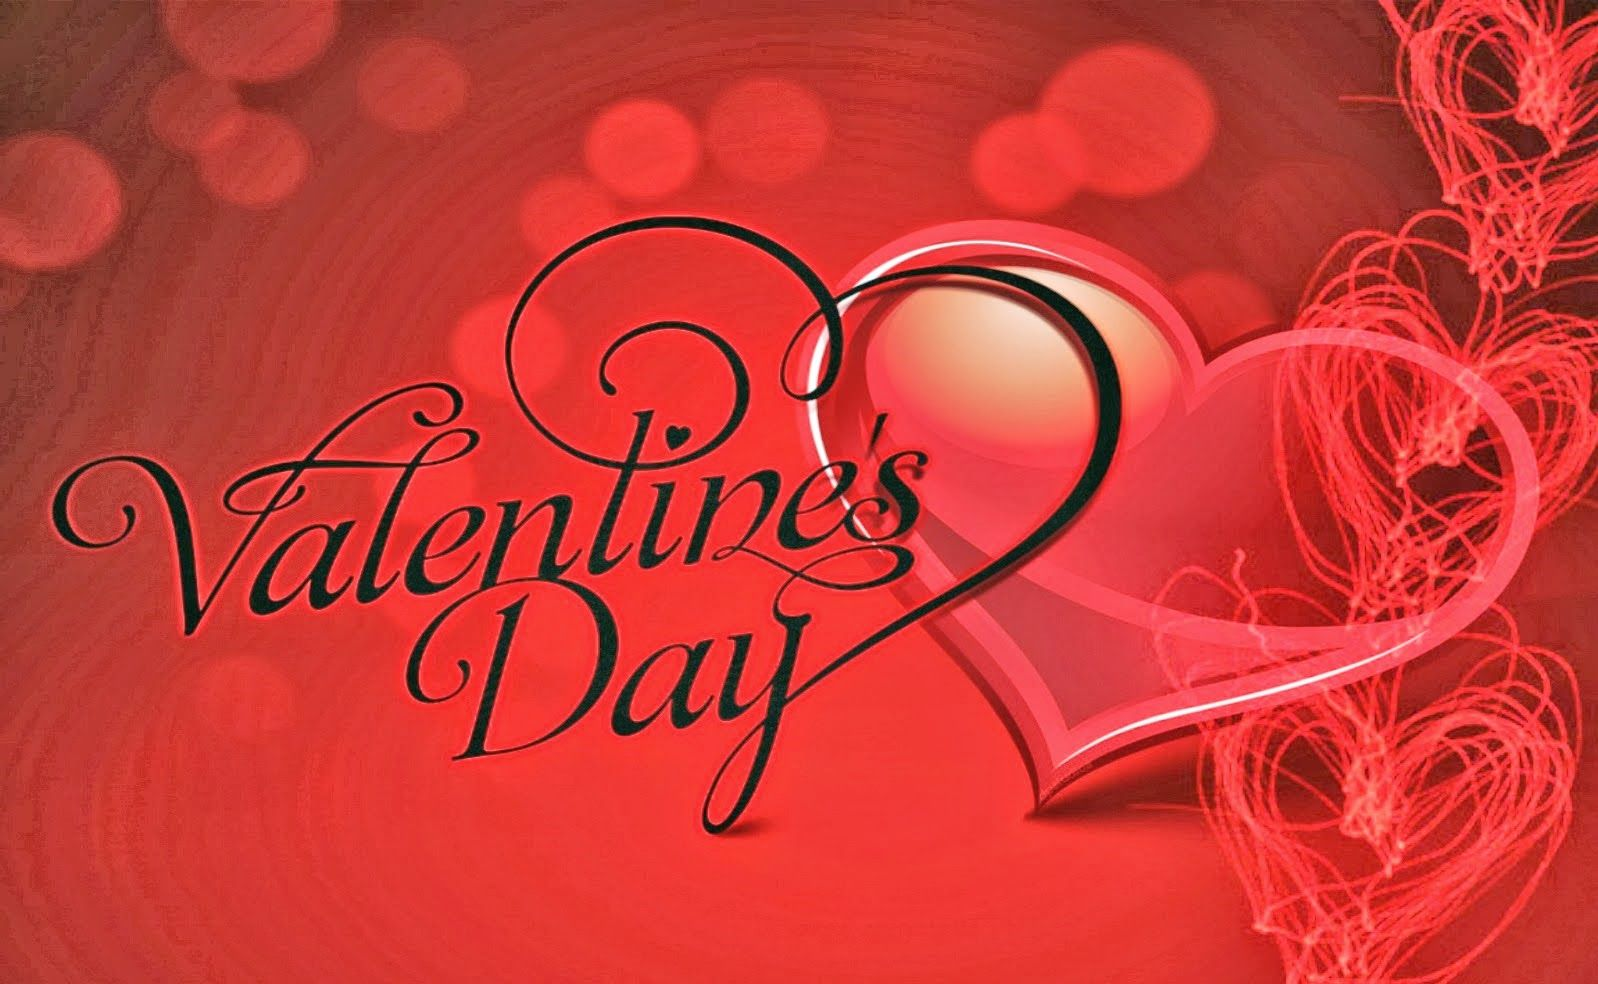 Happy valentines day wallpapers images pictures photos HD free – Happy Valentines Day 2015 Cards